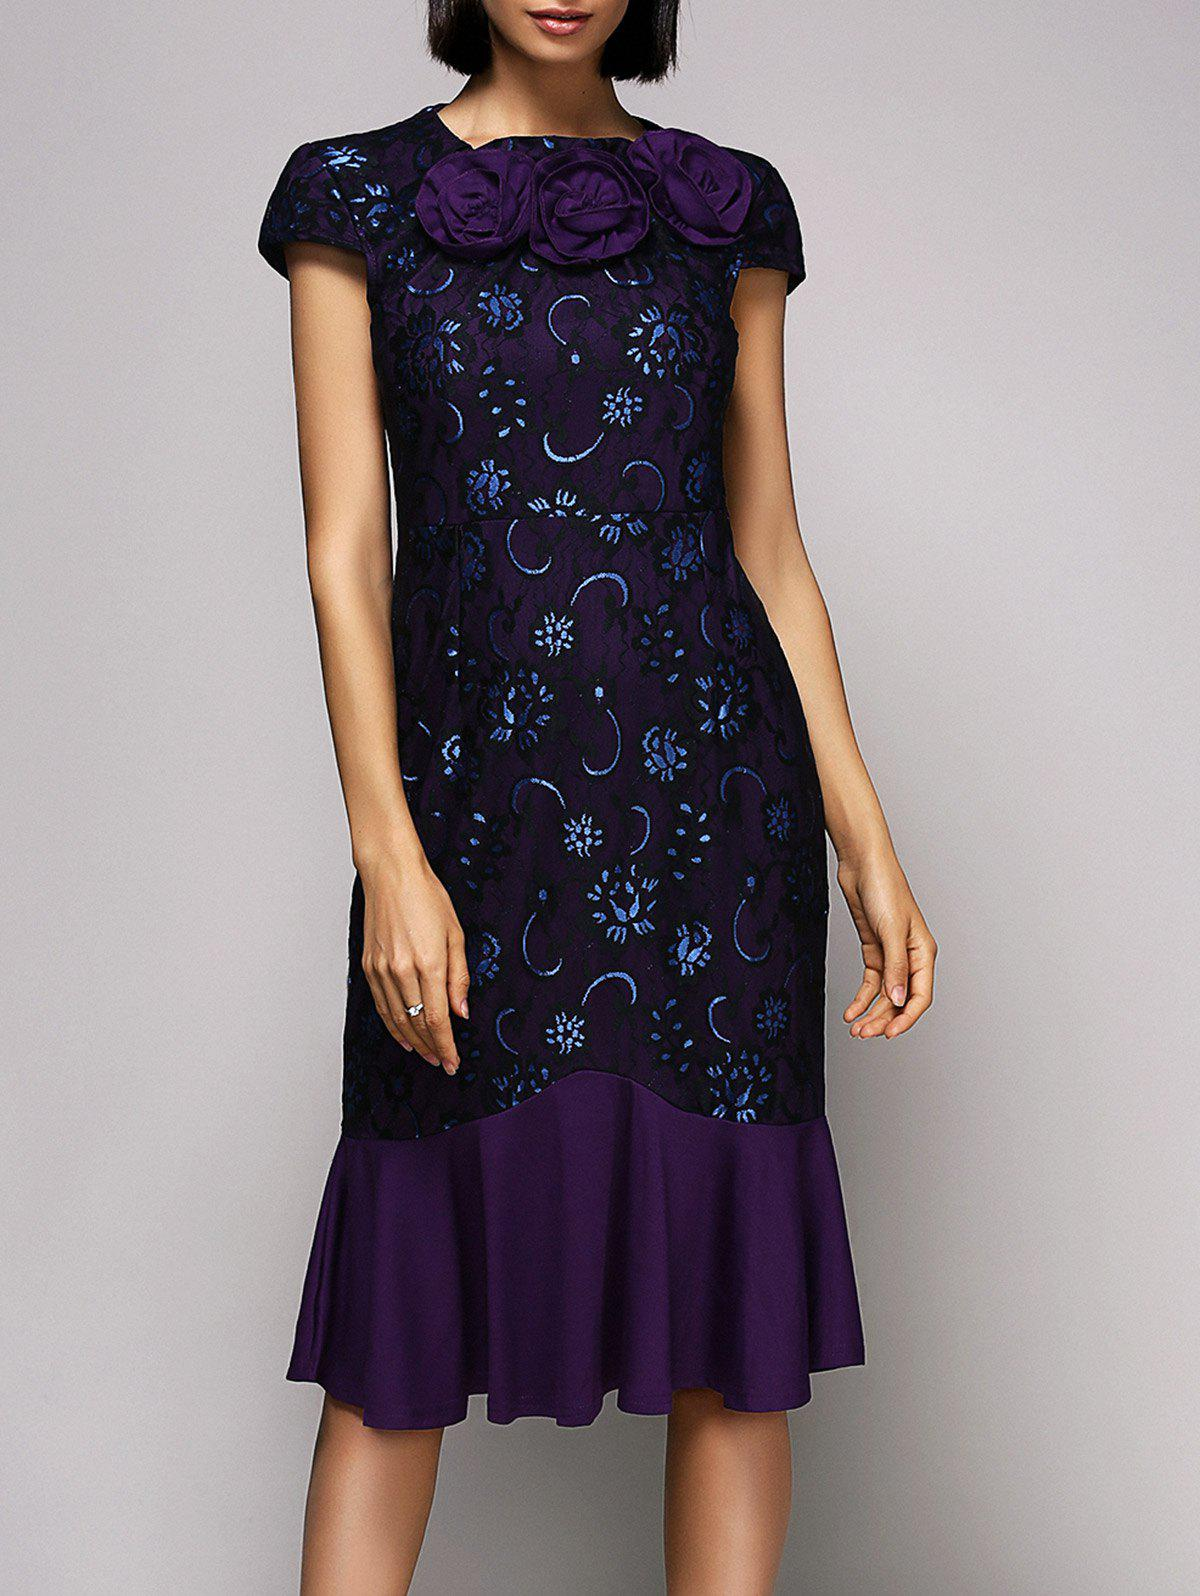 Vintage Women's Round Neck Cap Sleeve Floral Lace Midi Dress - PURPLE 2XL